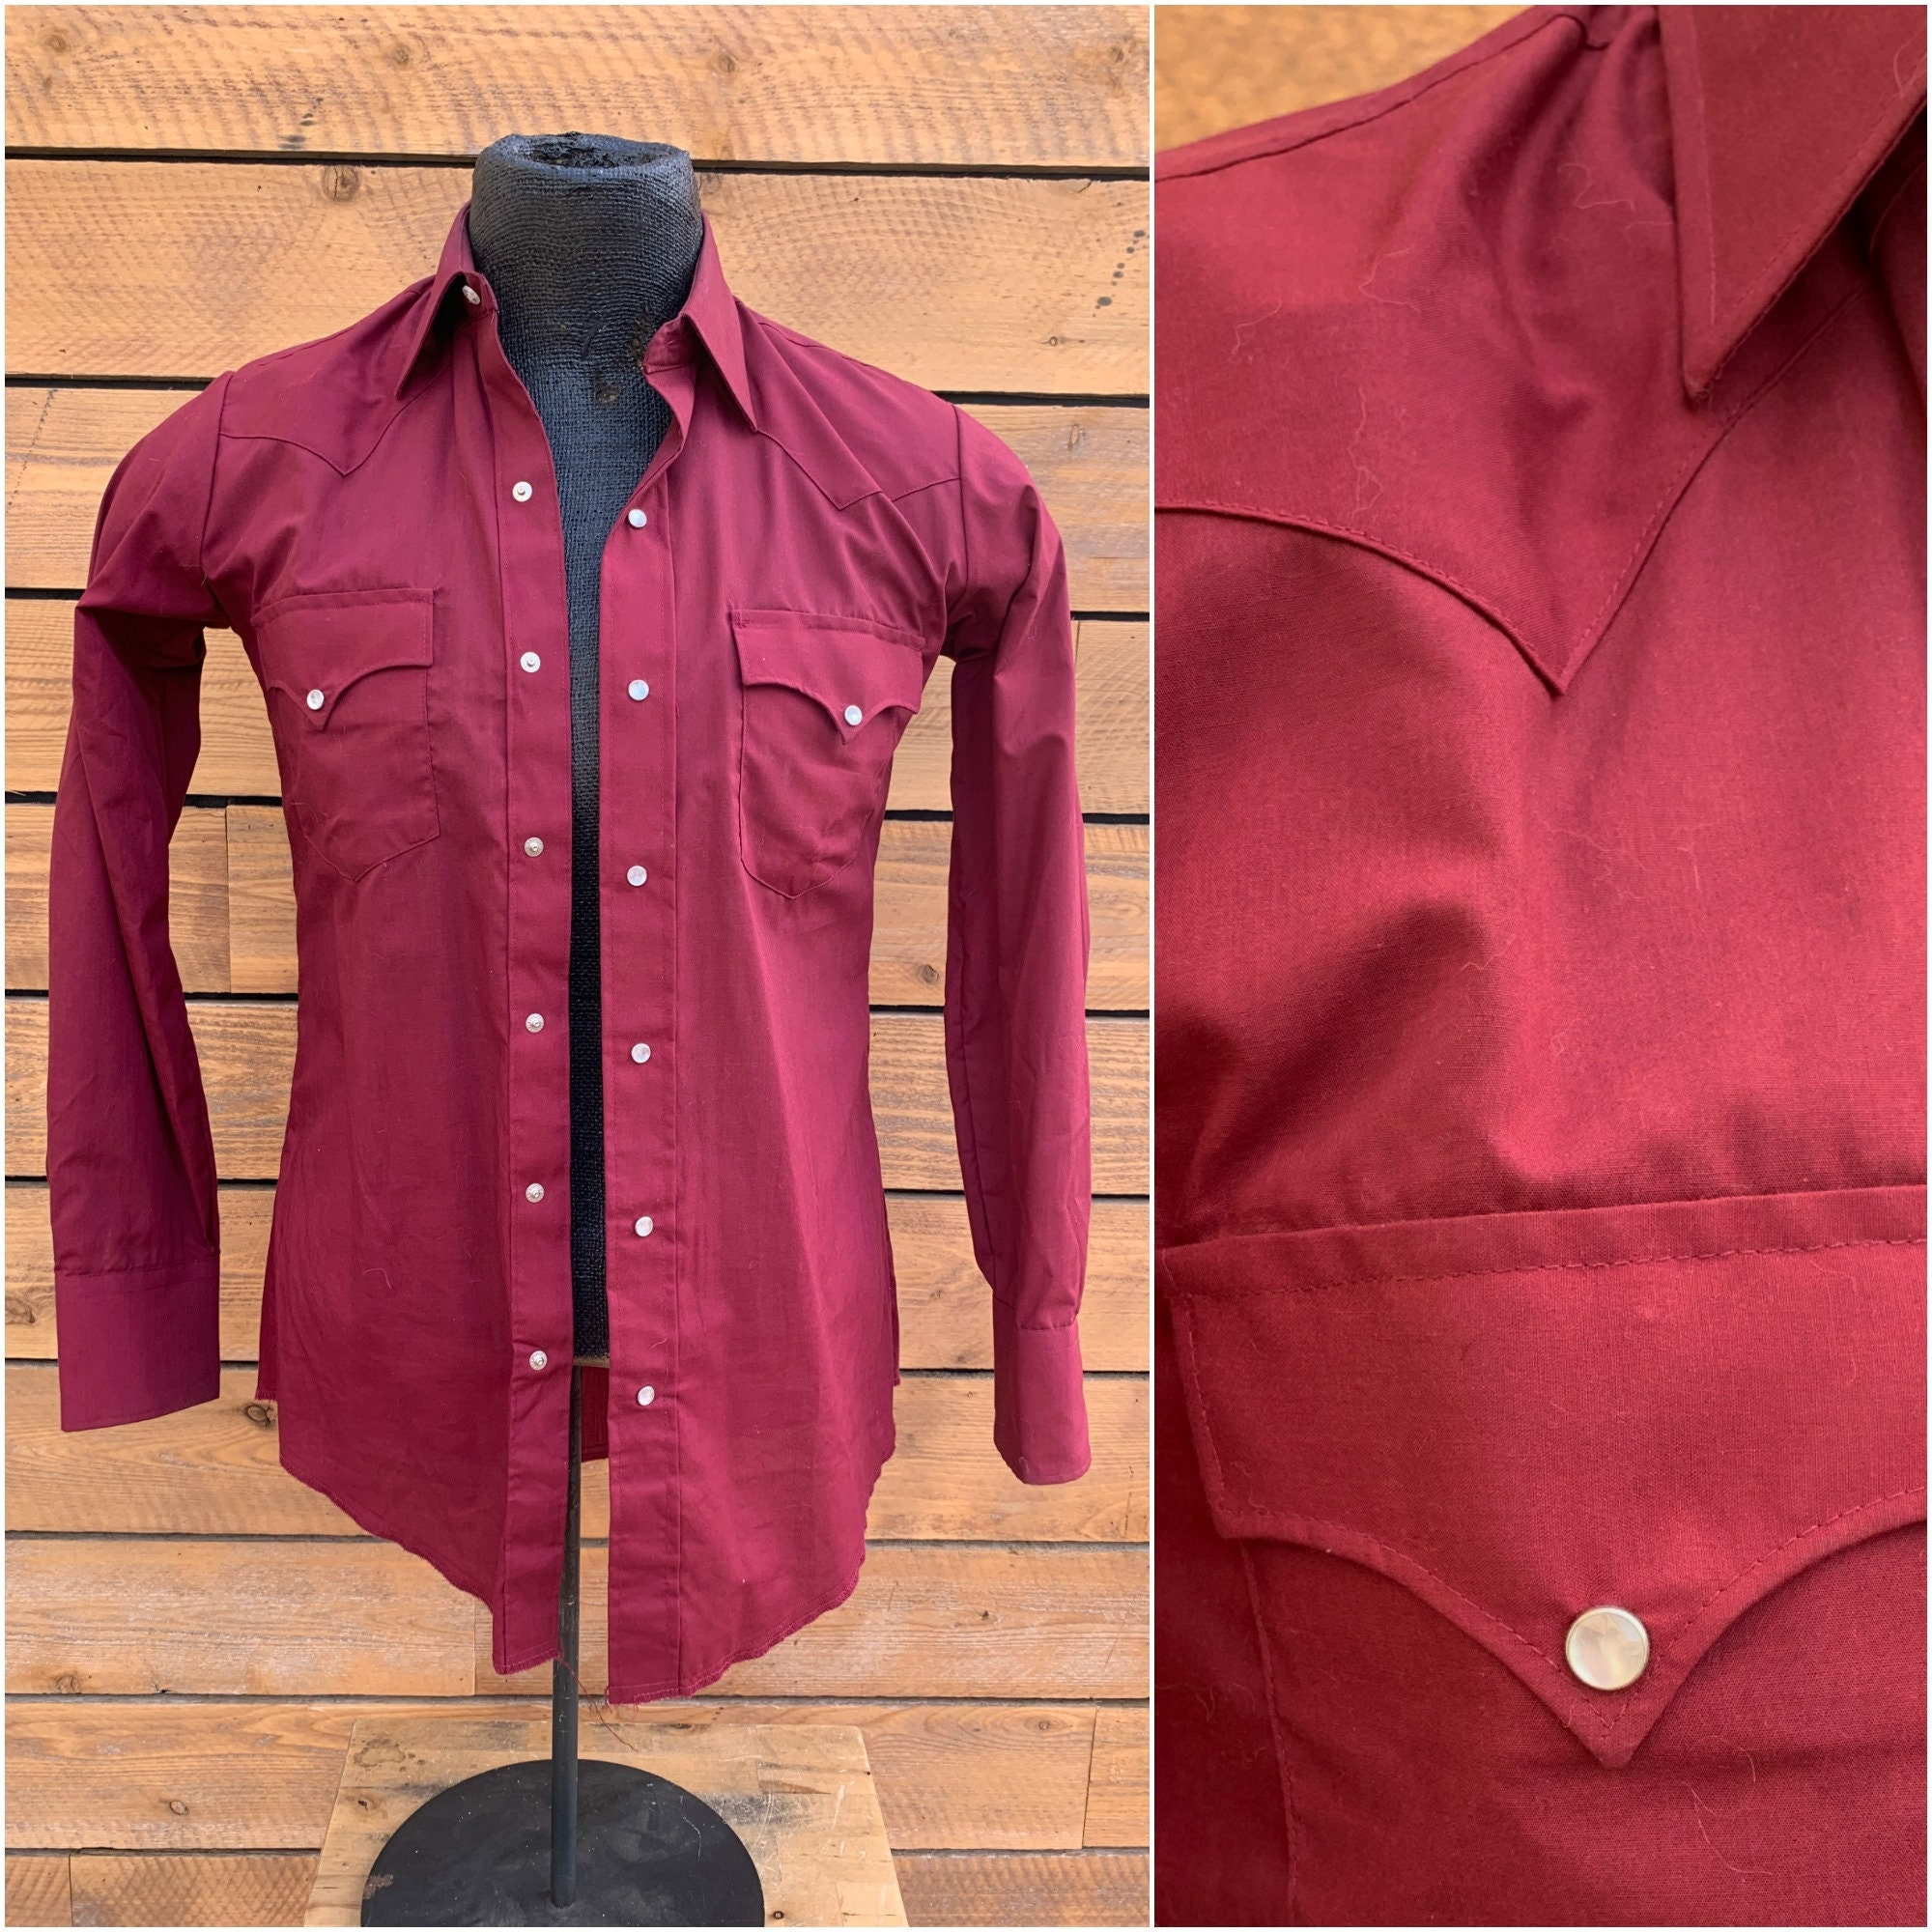 1970s Men's Shirt Styles – Vintage 70s Shirts for Guys Medium, Vintage Ely Plains Pearl Snap, 1970S Western Shirt, Red Snap Free Usa Shipping $68.00 AT vintagedancer.com